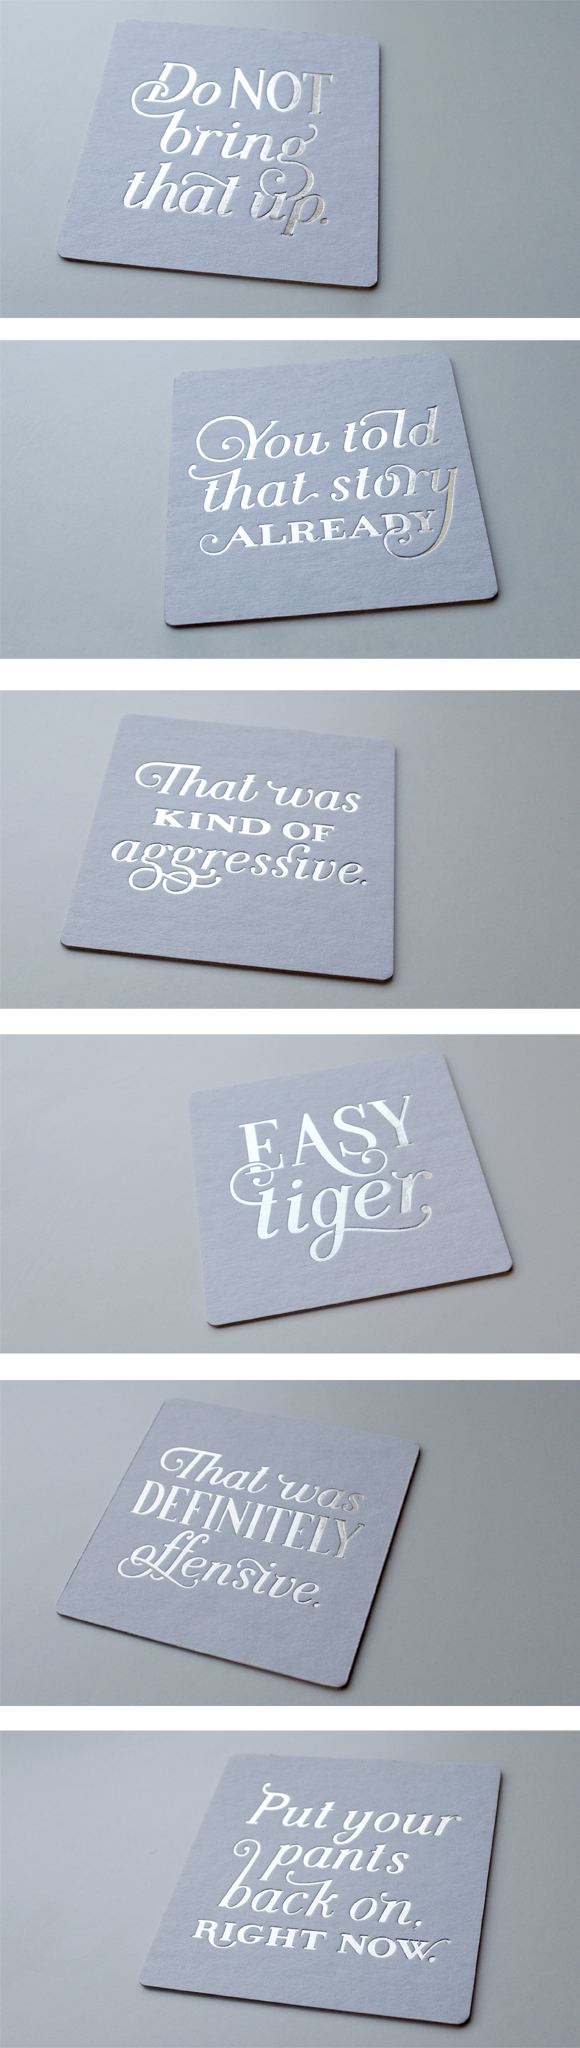 Silver foil always gets me ready for the season! https://squareup.com/market/spoolia-design-llc  Hand Lettered, Letterpress, Coasters, Gifts, Holiday, Spoolia Design, Typography, Silver Foil, Design